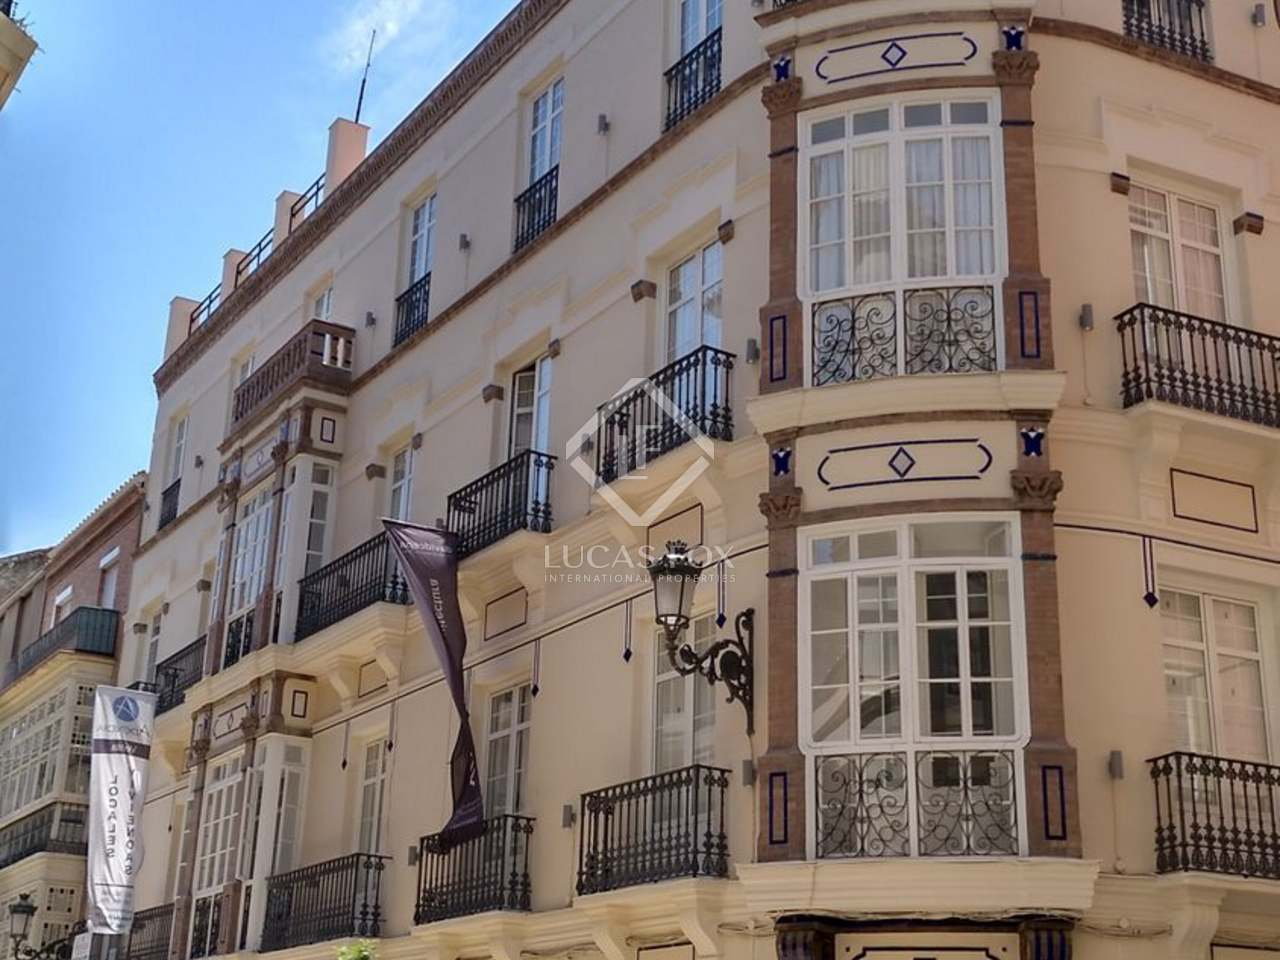 Astonishing 79M2 Apartment For Sale In Malaga Spain Download Free Architecture Designs Scobabritishbridgeorg